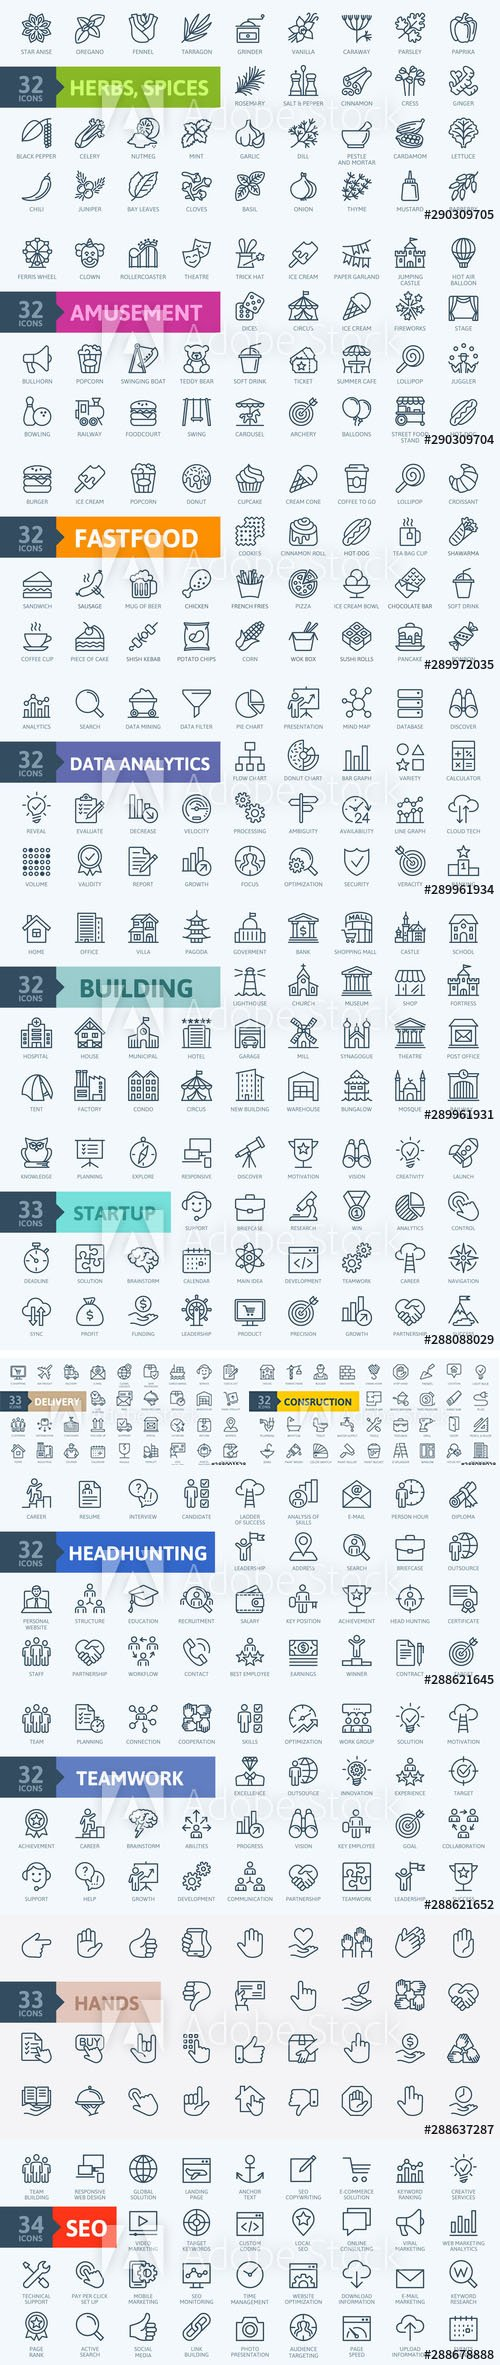 Outline web icons - Thin line web icon collection